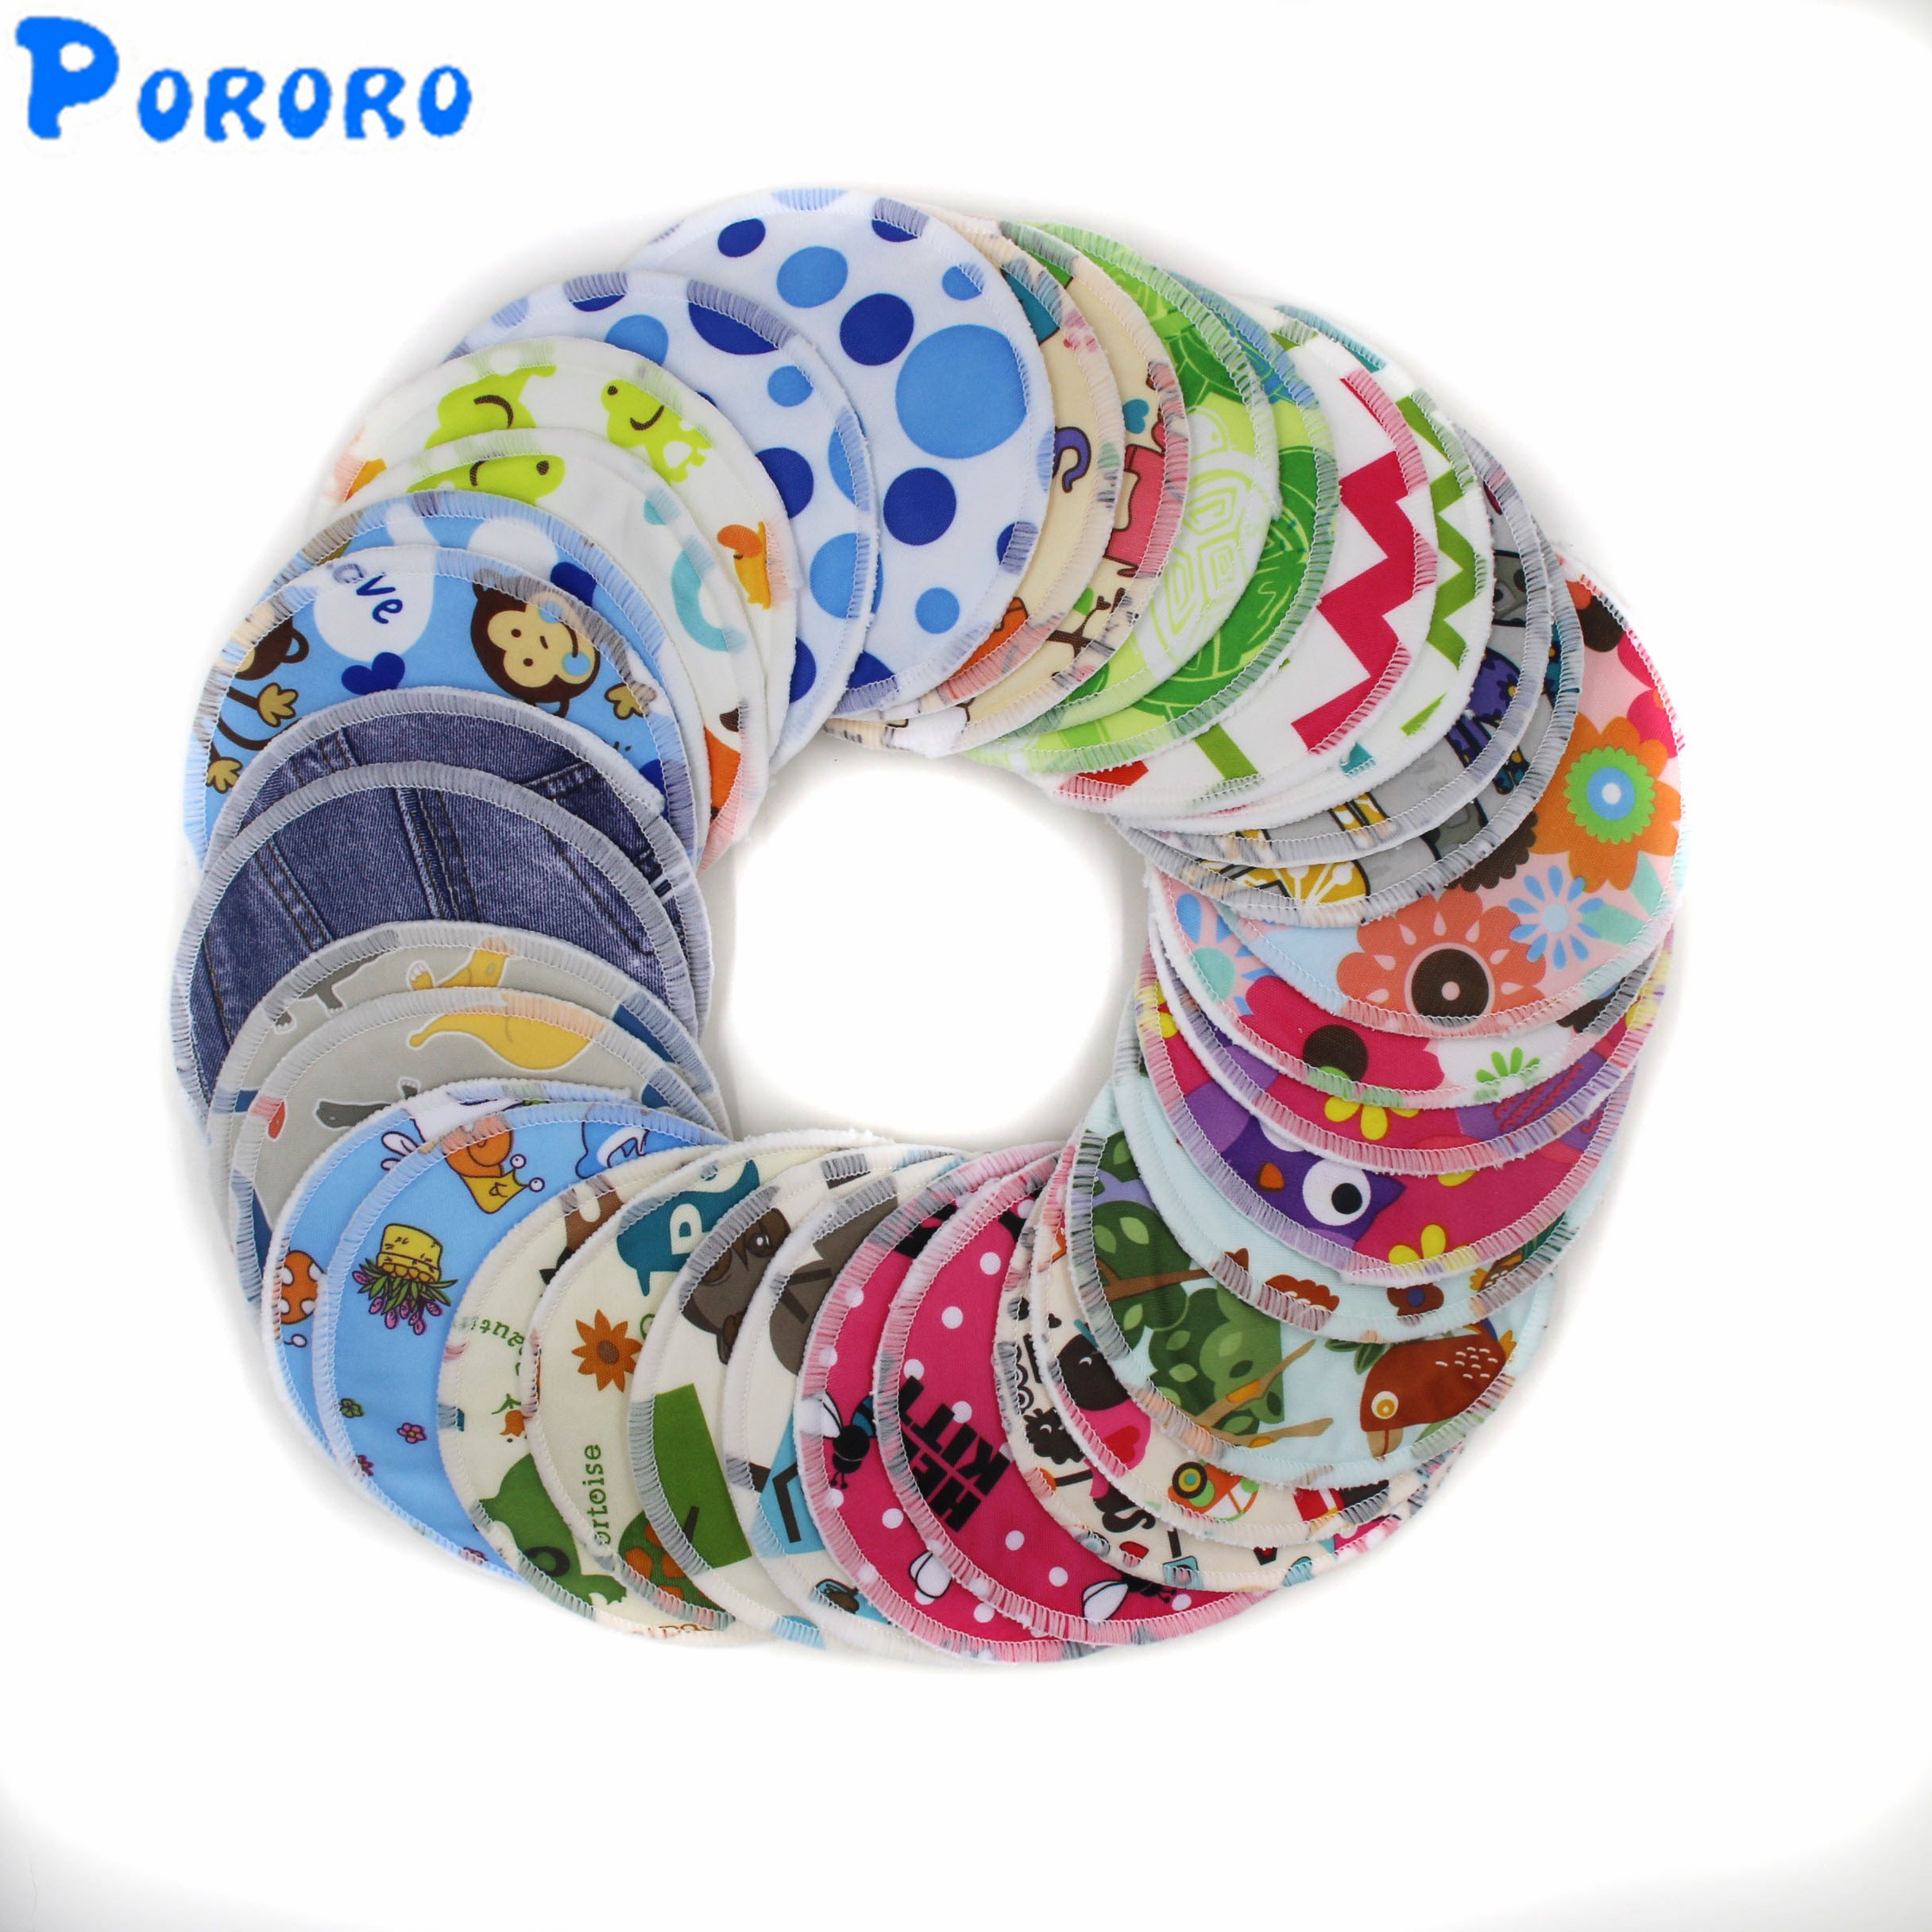 10 Pcs/lot Pregnant Women Washable Nursing Pads Bamboo Cartoon Print Reusable Nursing Pads Lady Breastfeeding Pads Color Random